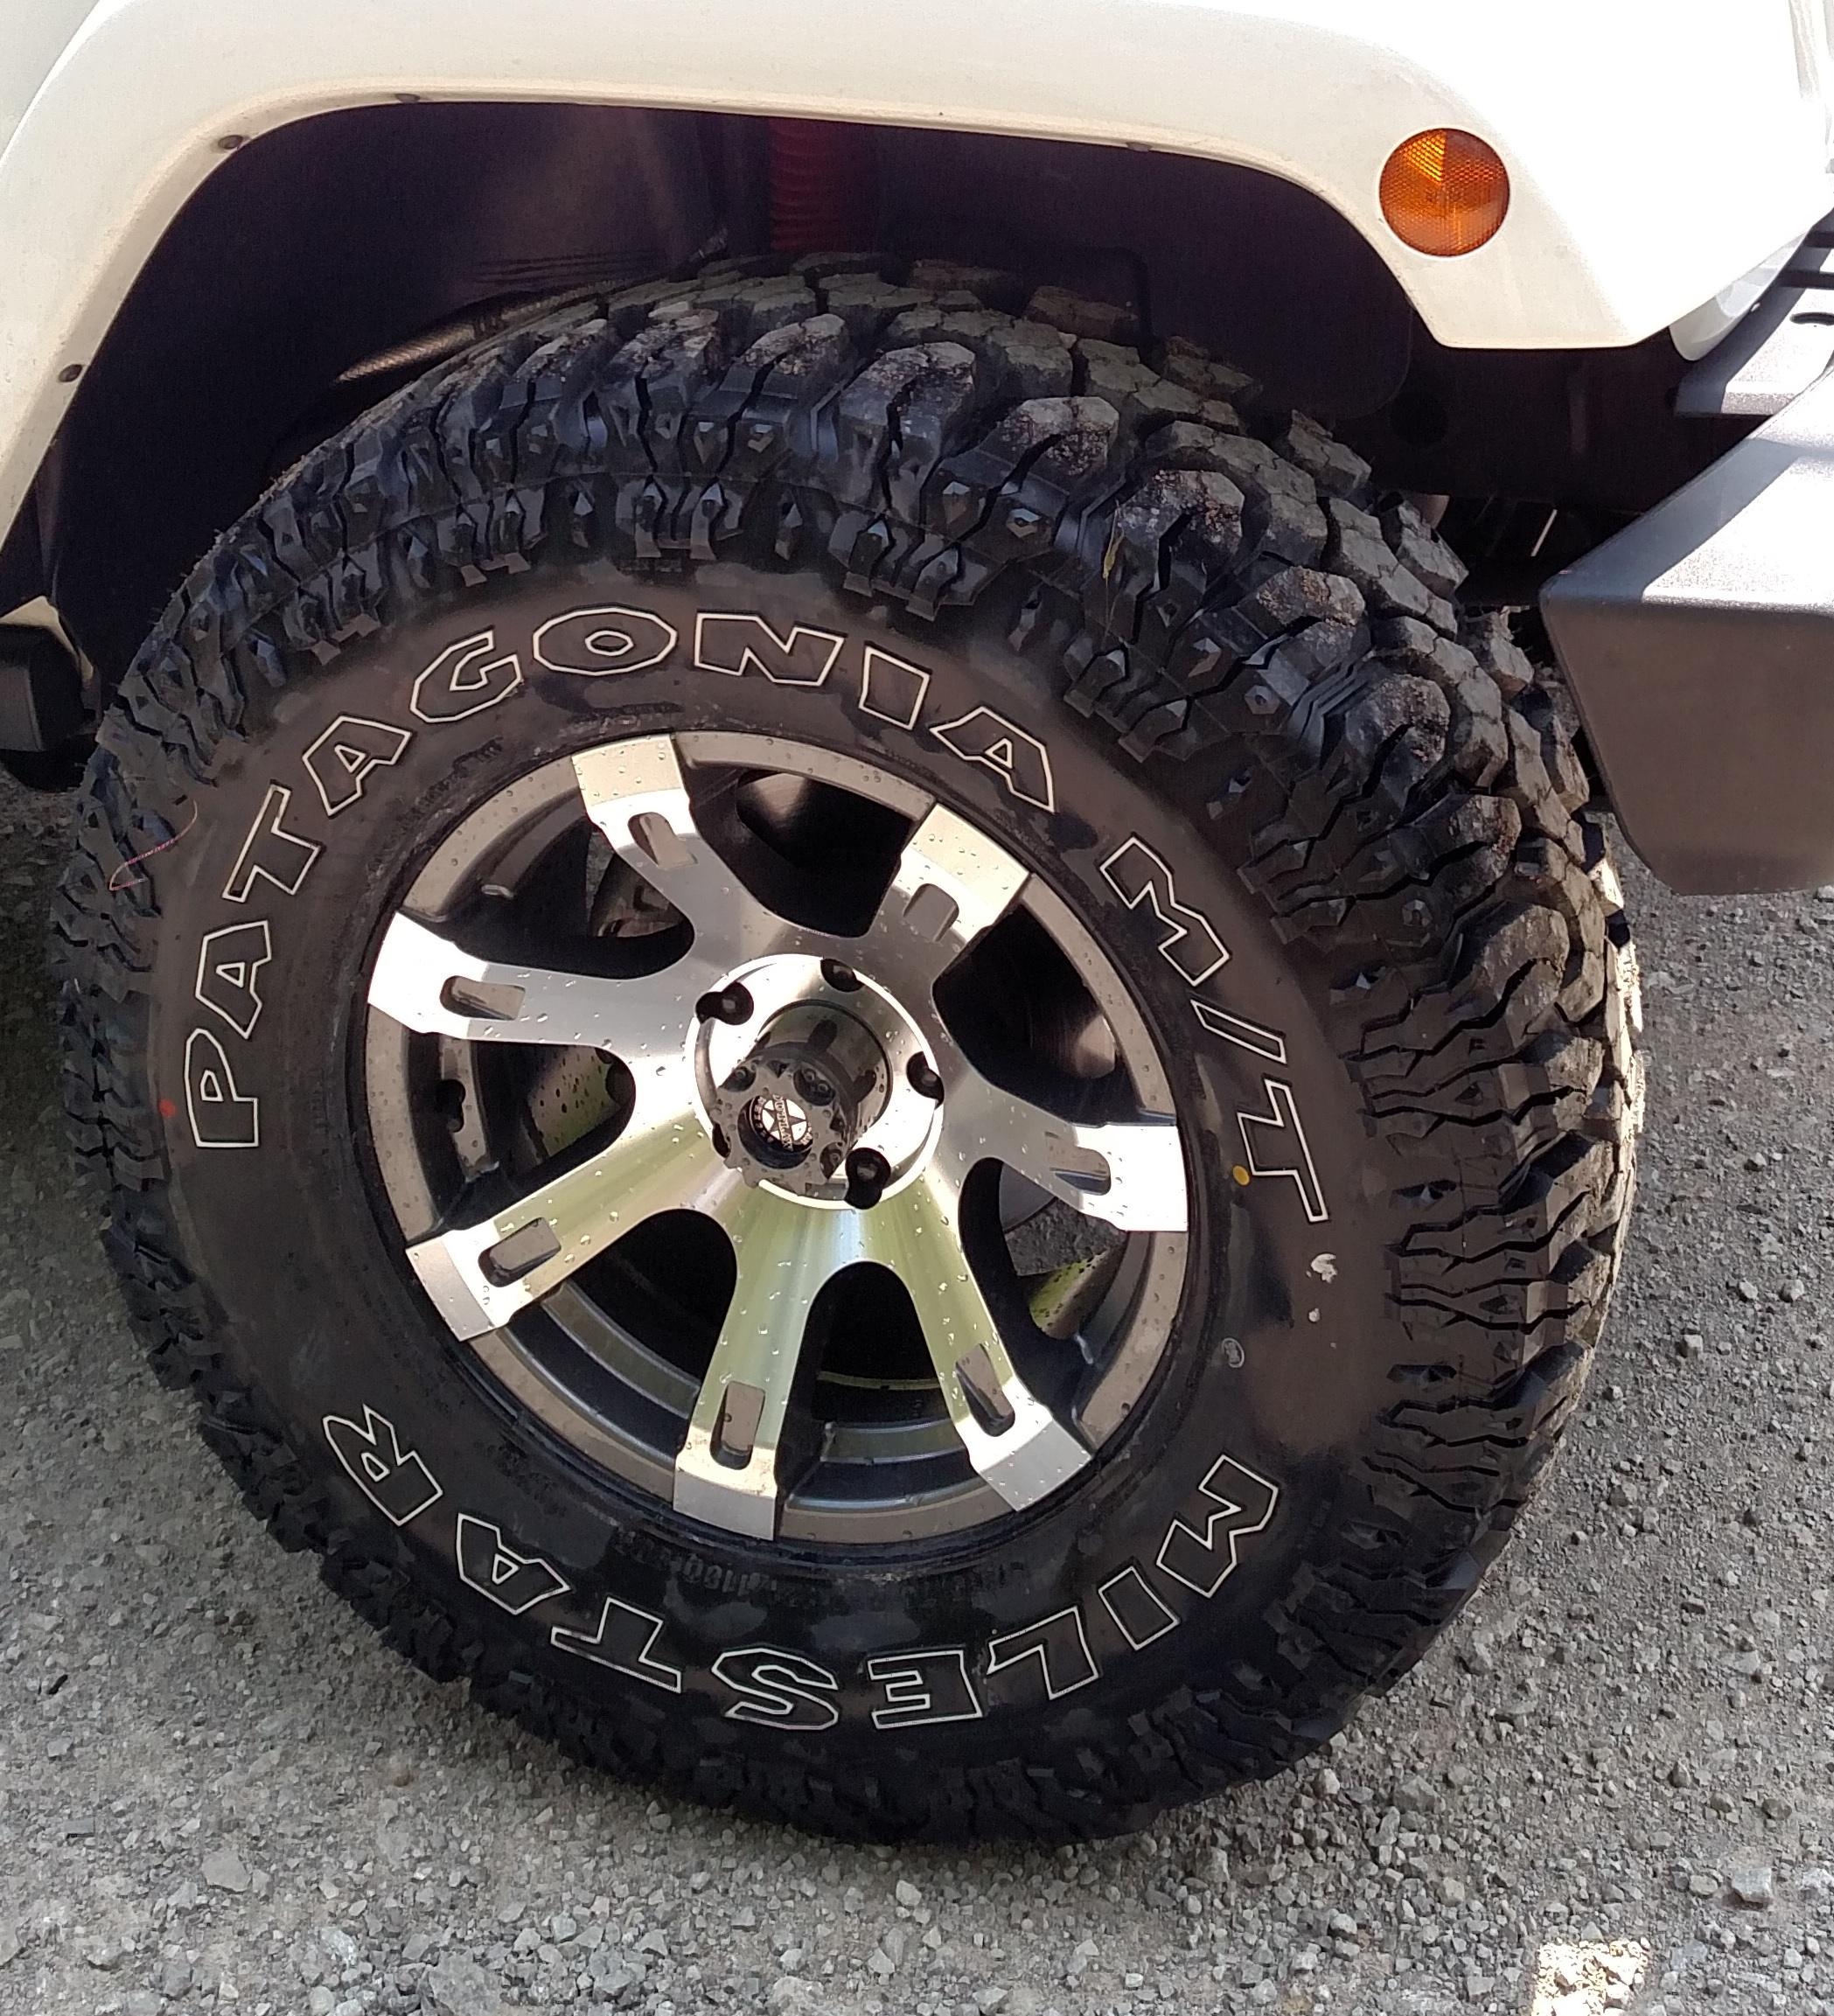 Click image for larger version  Name:just tire.jpg Views:1485 Size:1.56 MB ID:3773033